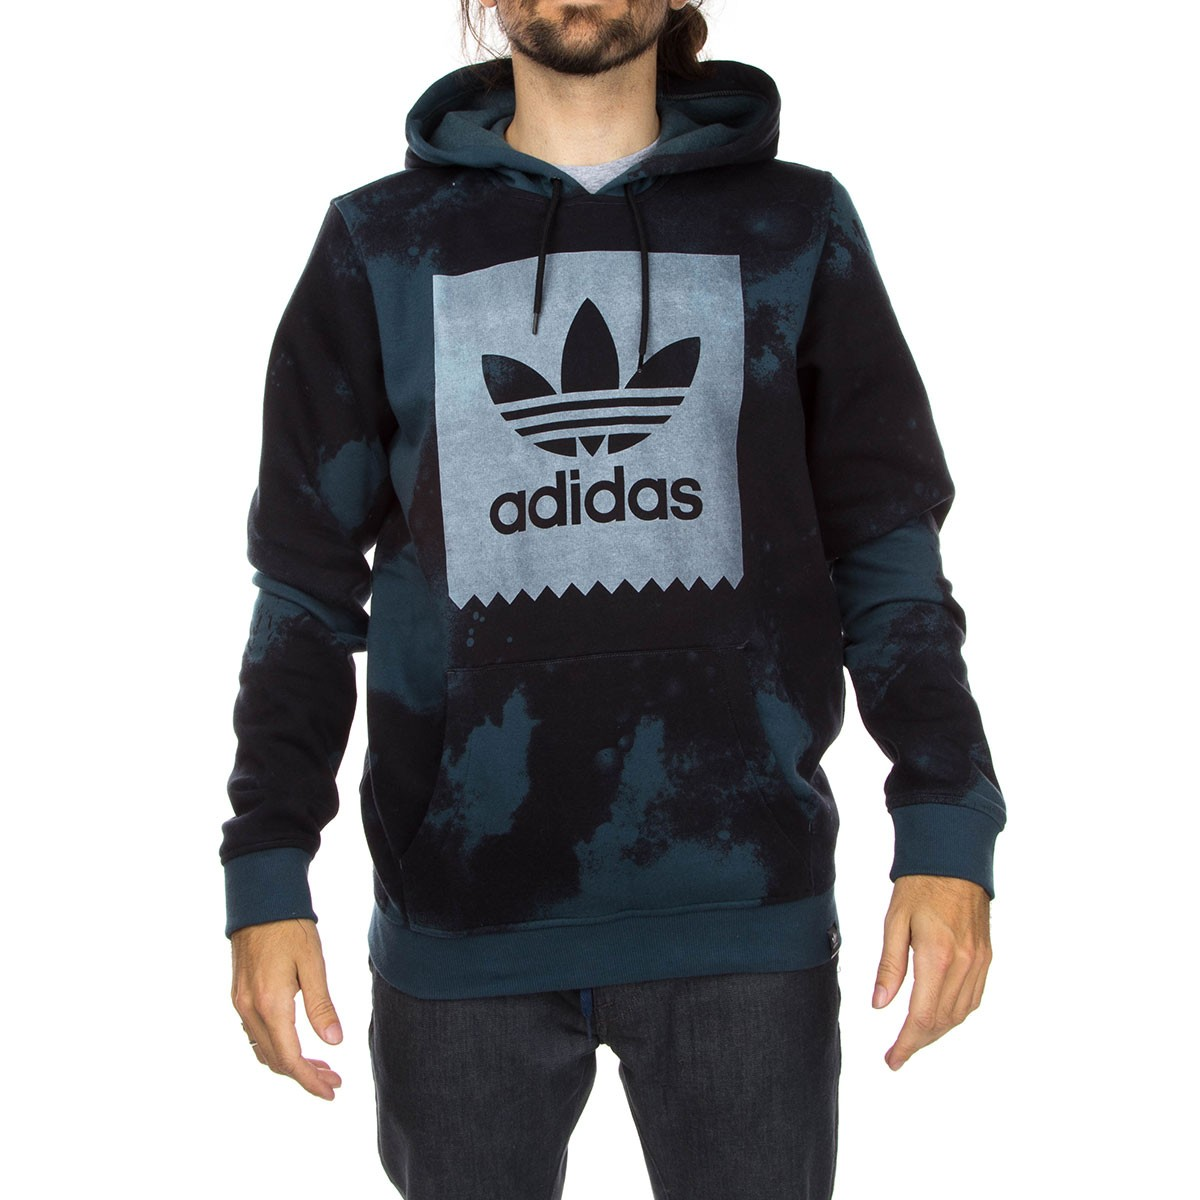 Adidas Hoodies Long Sleeved In 326062 For Men